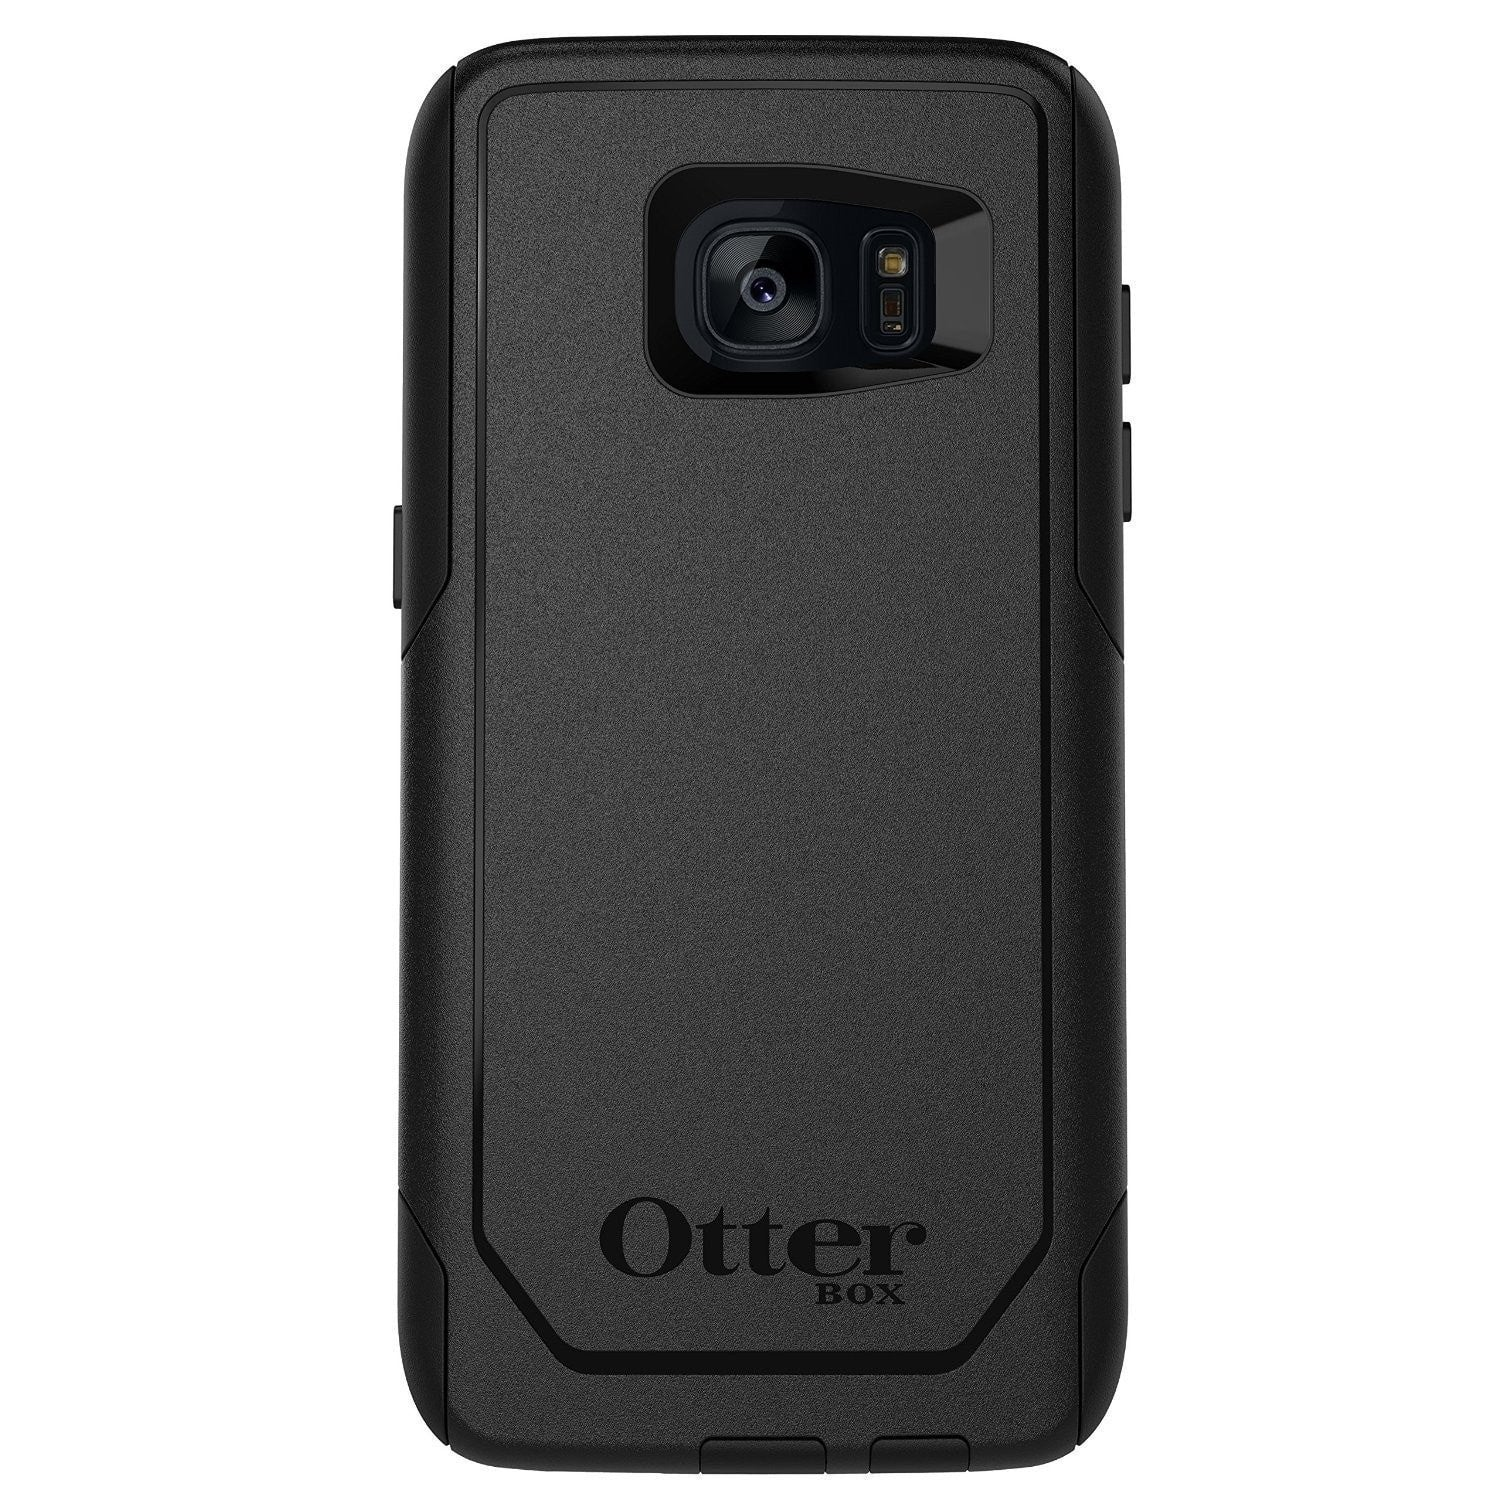 brand new 72d6b a364a Otterbox Commuter Case for Samsung Galaxy S7 Edge - Black